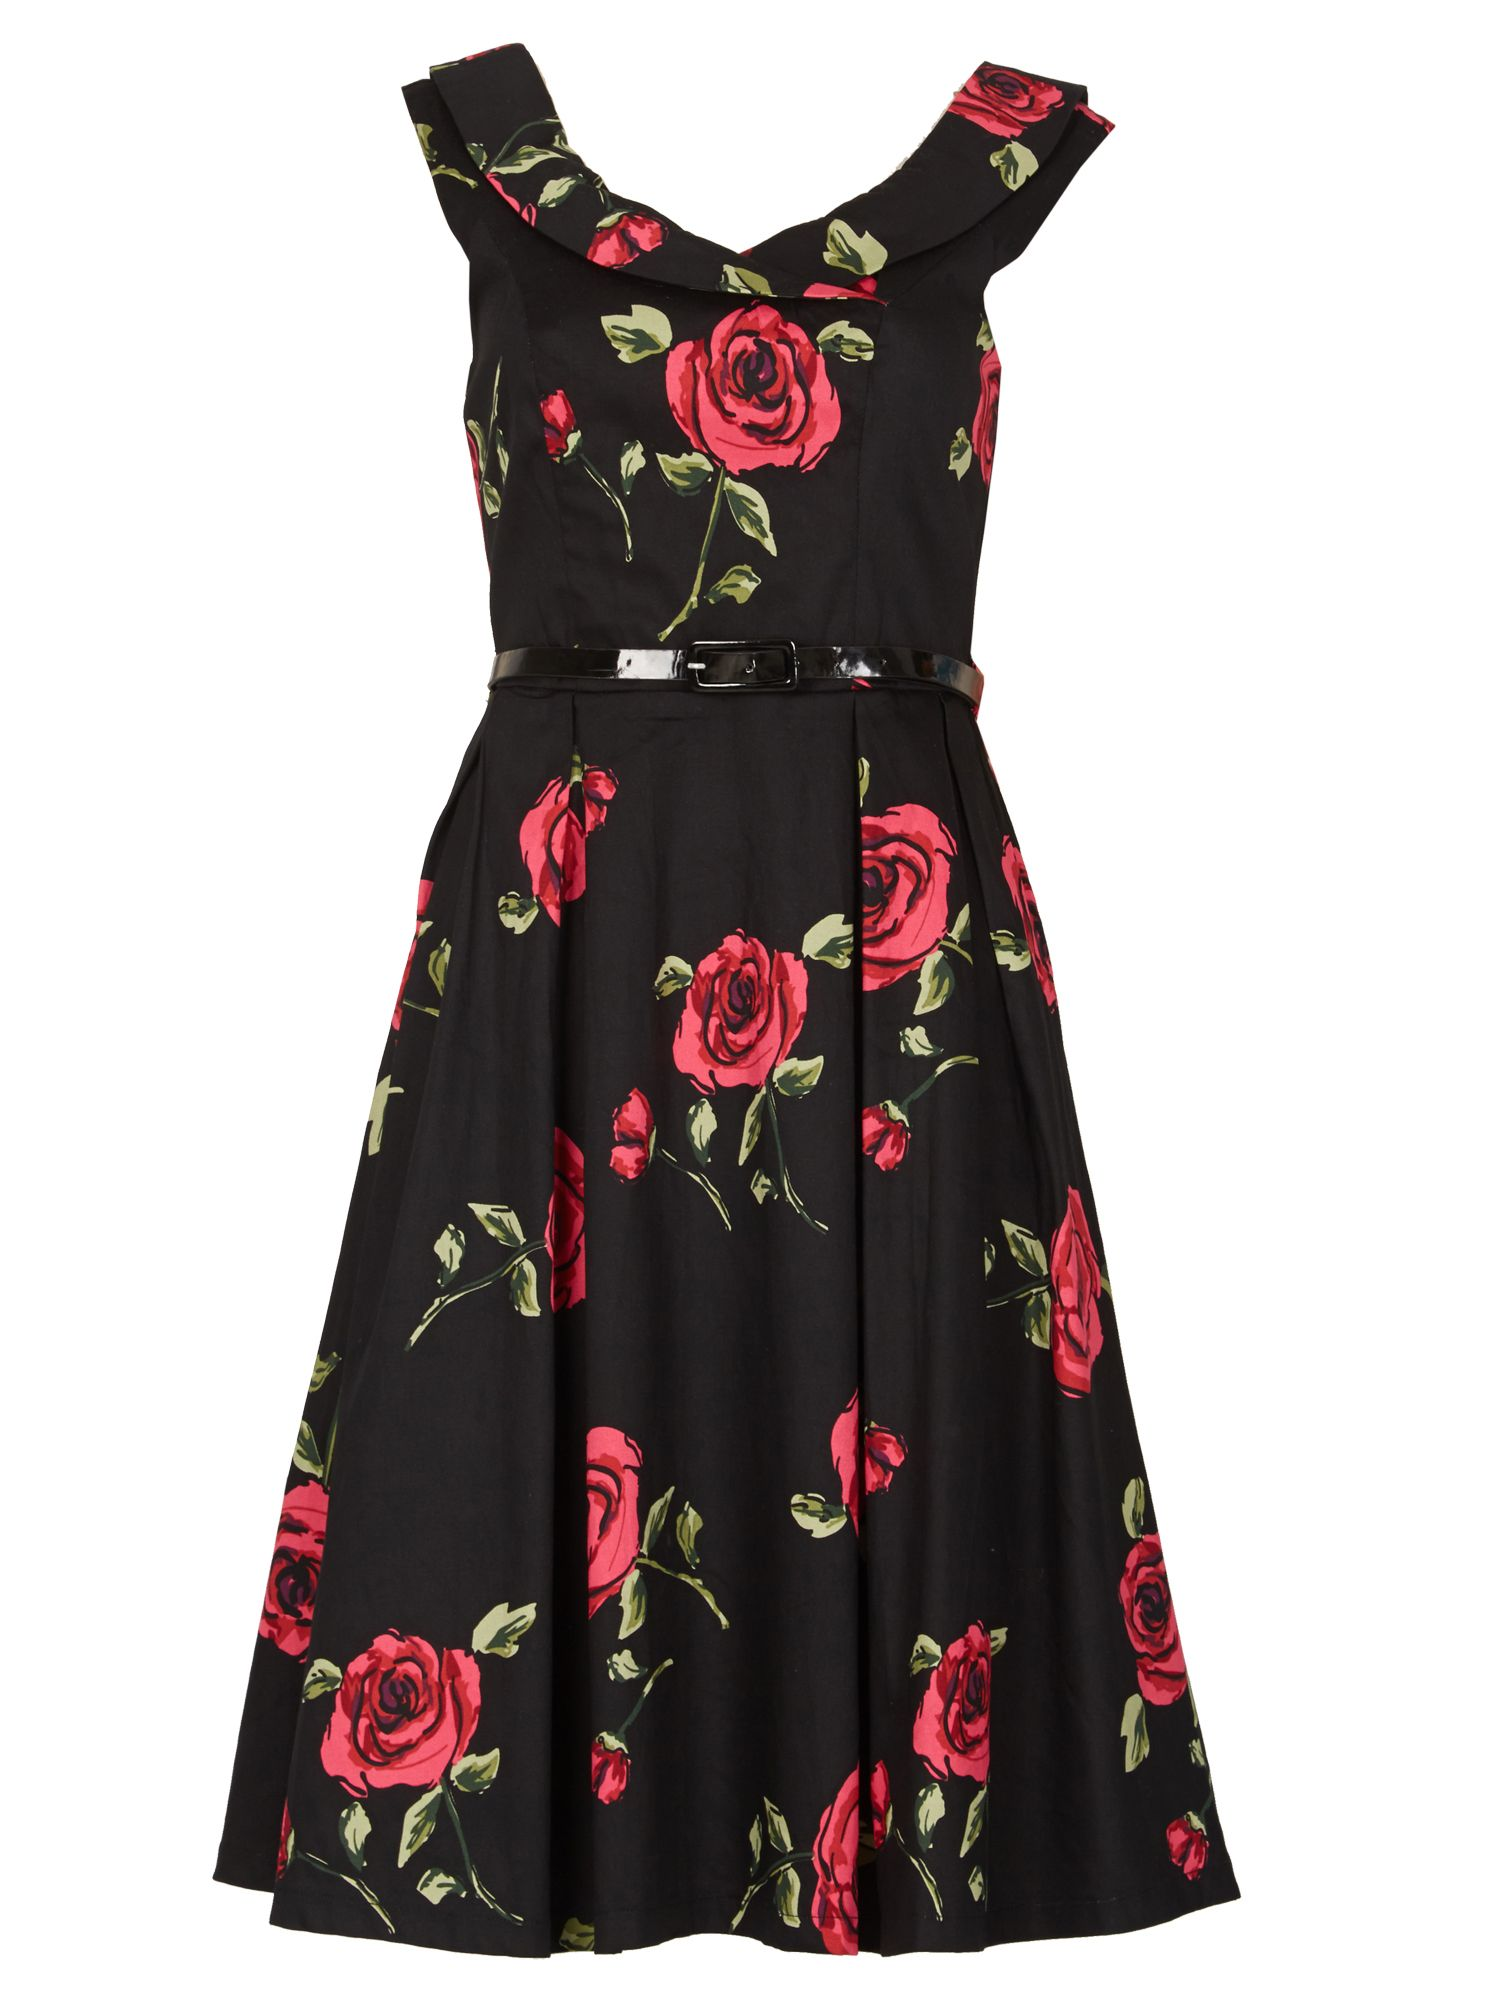 Izabel London Floral Flare Dress, Black